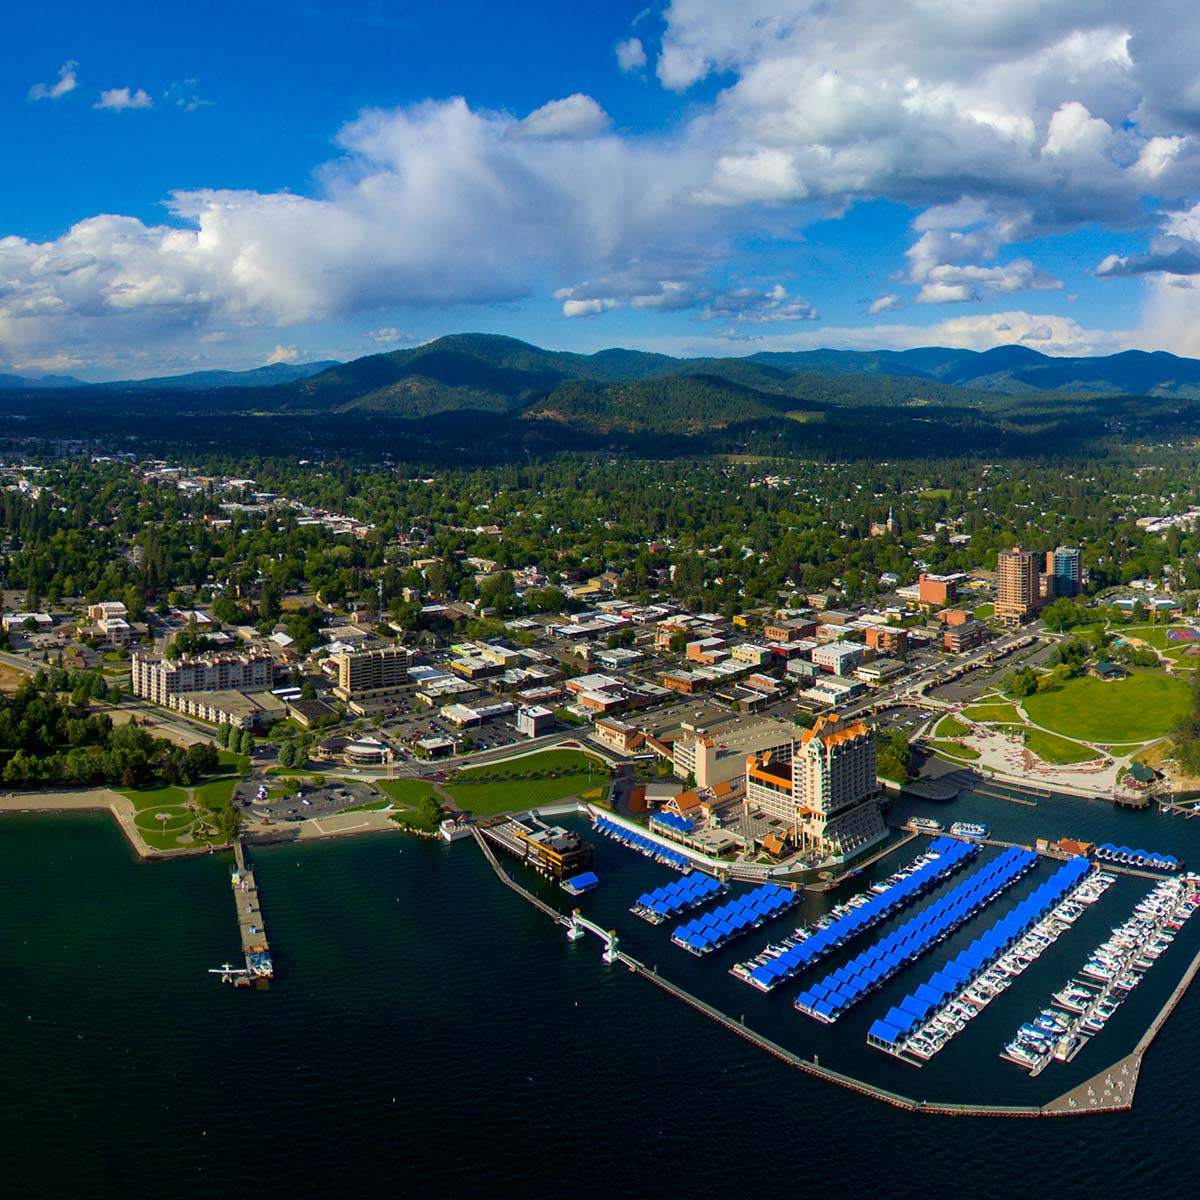 Overhead shot of dock and Coeur d'Alene cityscape